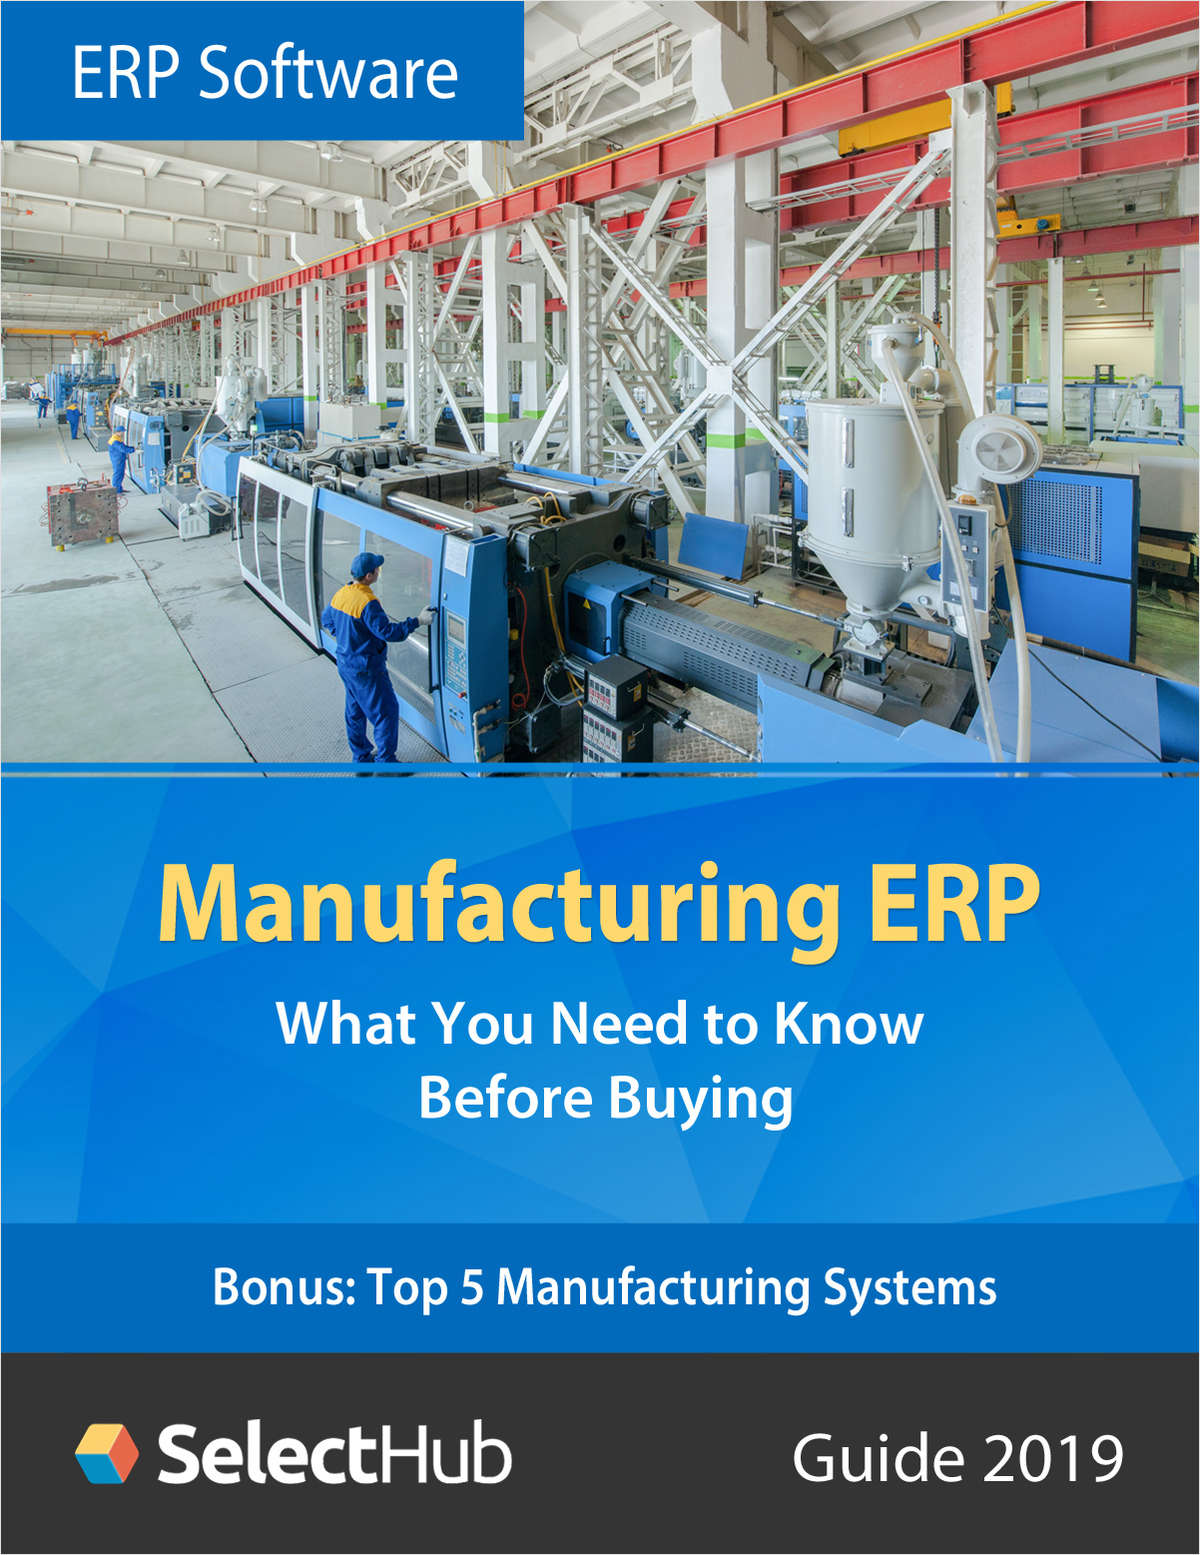 Manufacturing ERP Systems: What You Need to Know Before Buying